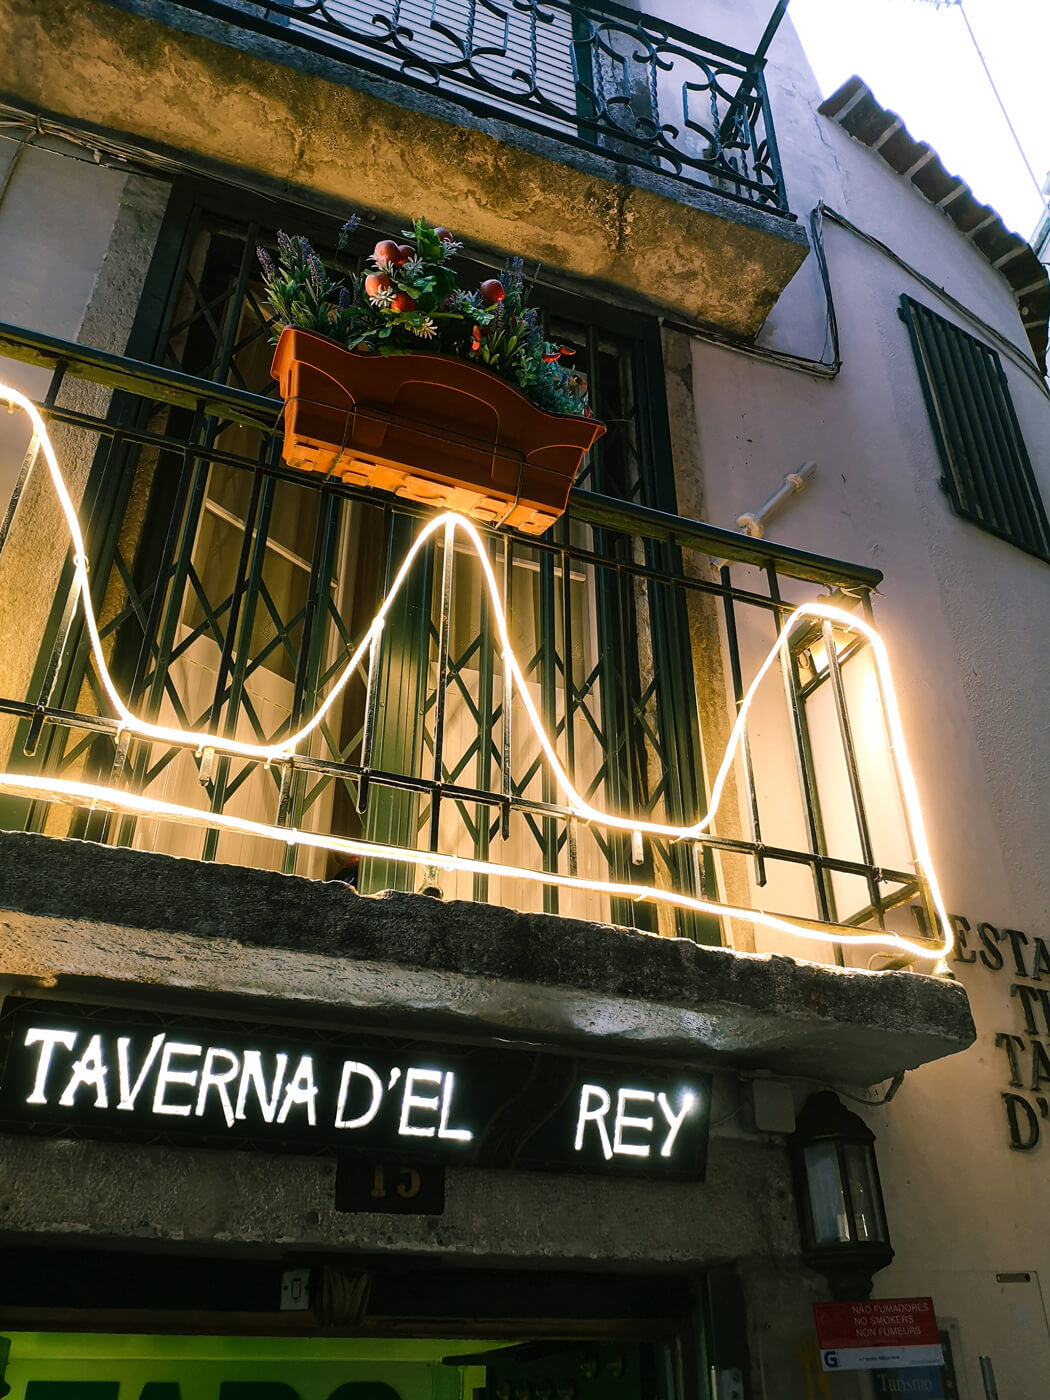 An exterior shot of a restaurant in the old town Lisbon area. A flower pot is hanging on the balcony and neon lights are drapped across. The pub sign is lit up and is called Taverna D'el Rey.